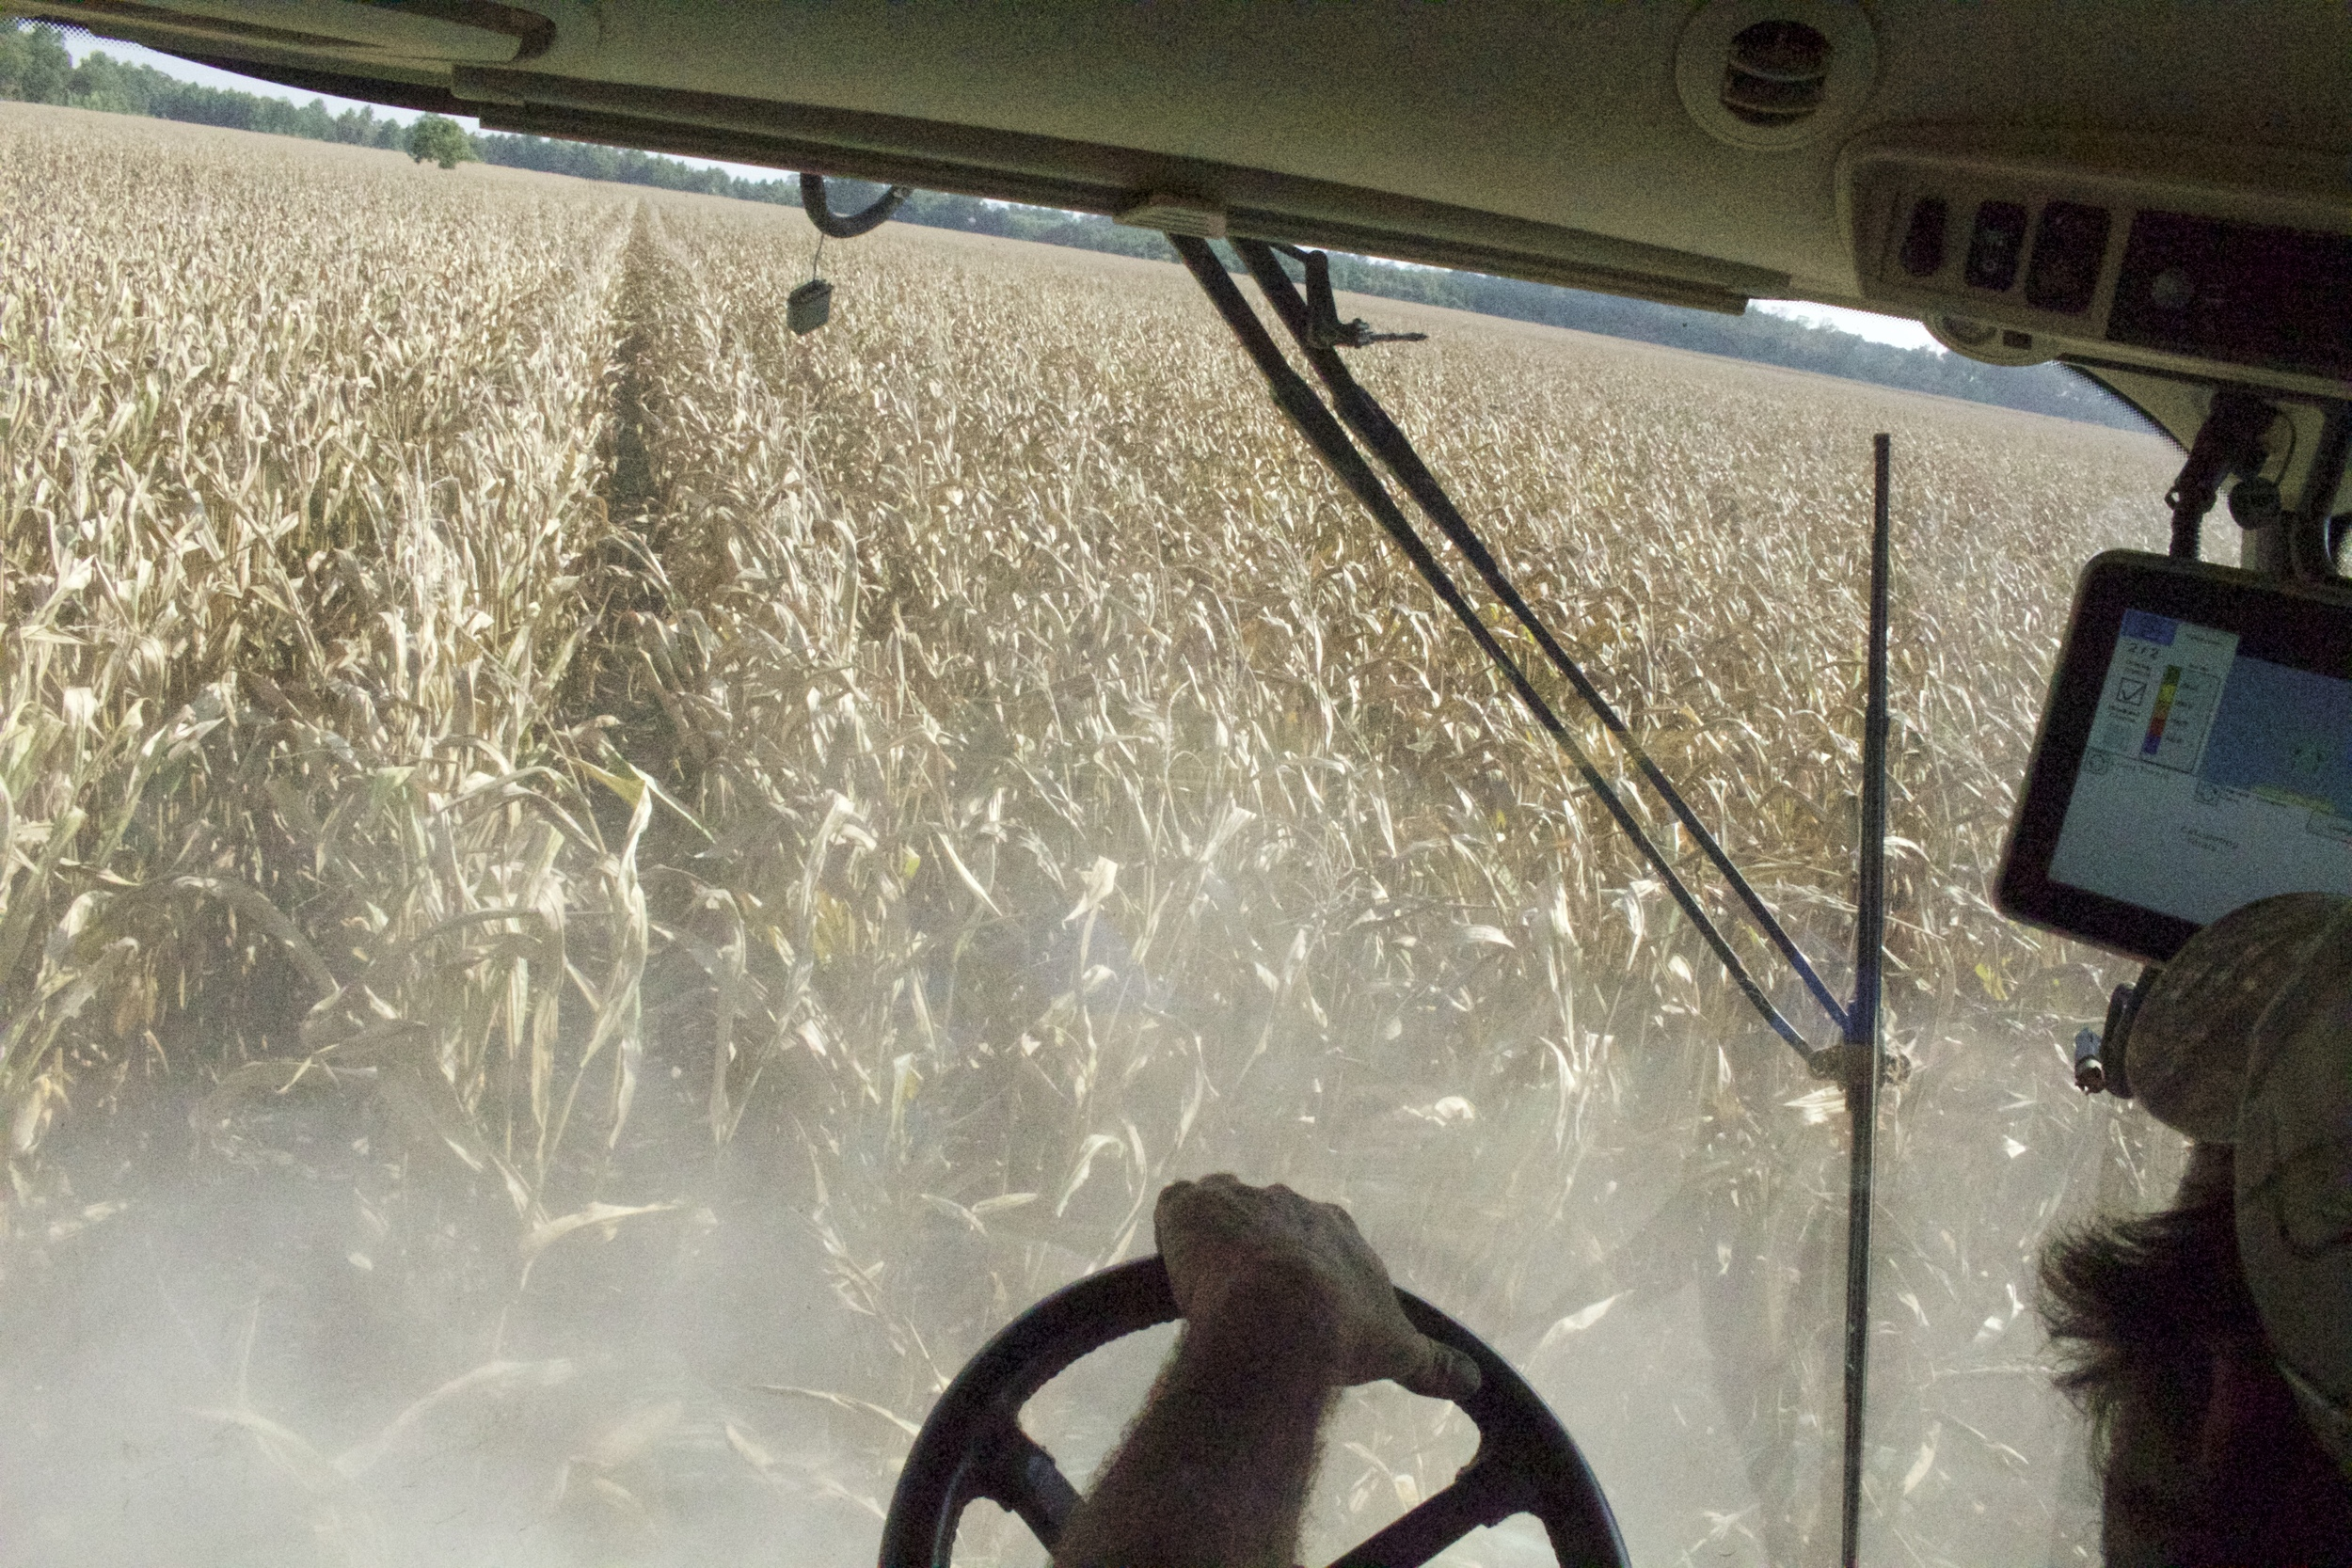 from the cab of a combine harvesting corn